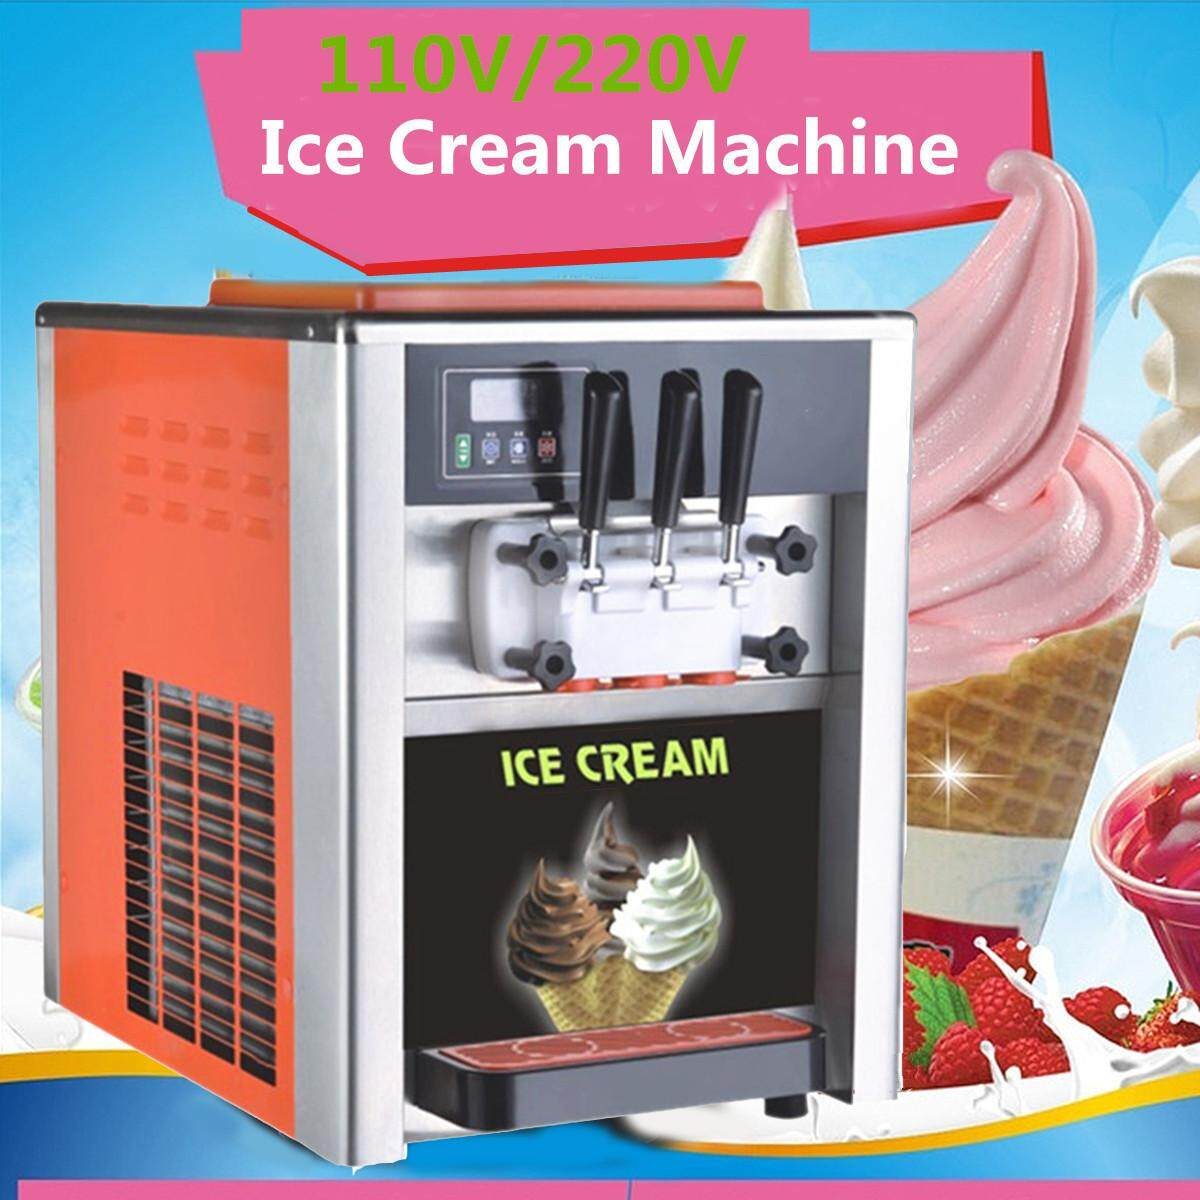 Ice Cream Maker For Sale Ice Cream Machine Prices Brands Review